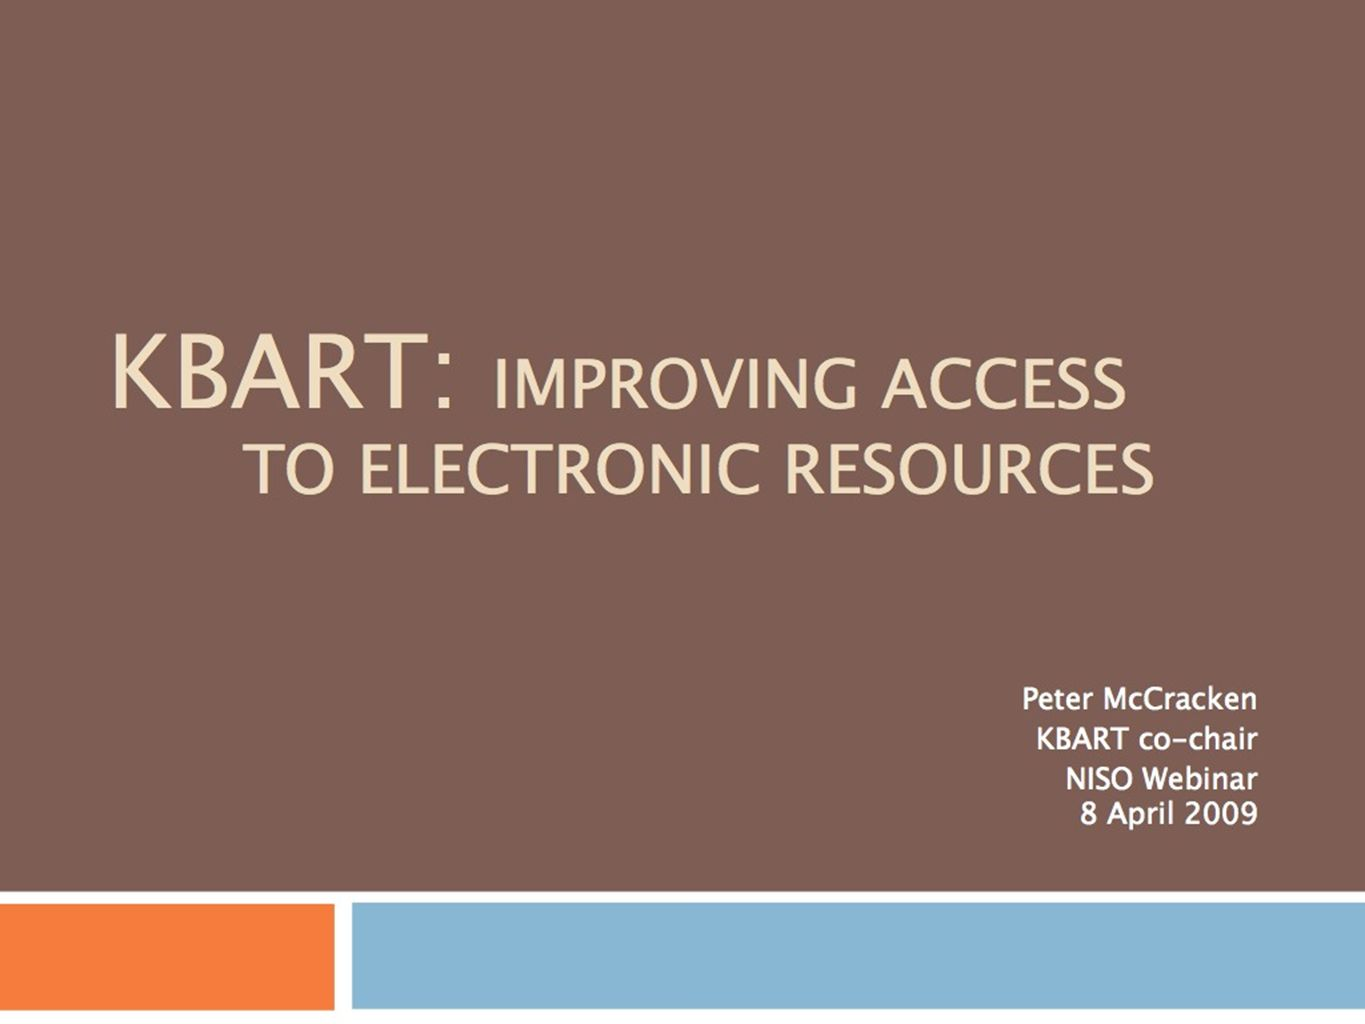 KBART: Improving Access to Electronic Resources Peter McCracken KBART co-chair NISO Webinar 8 April 2009